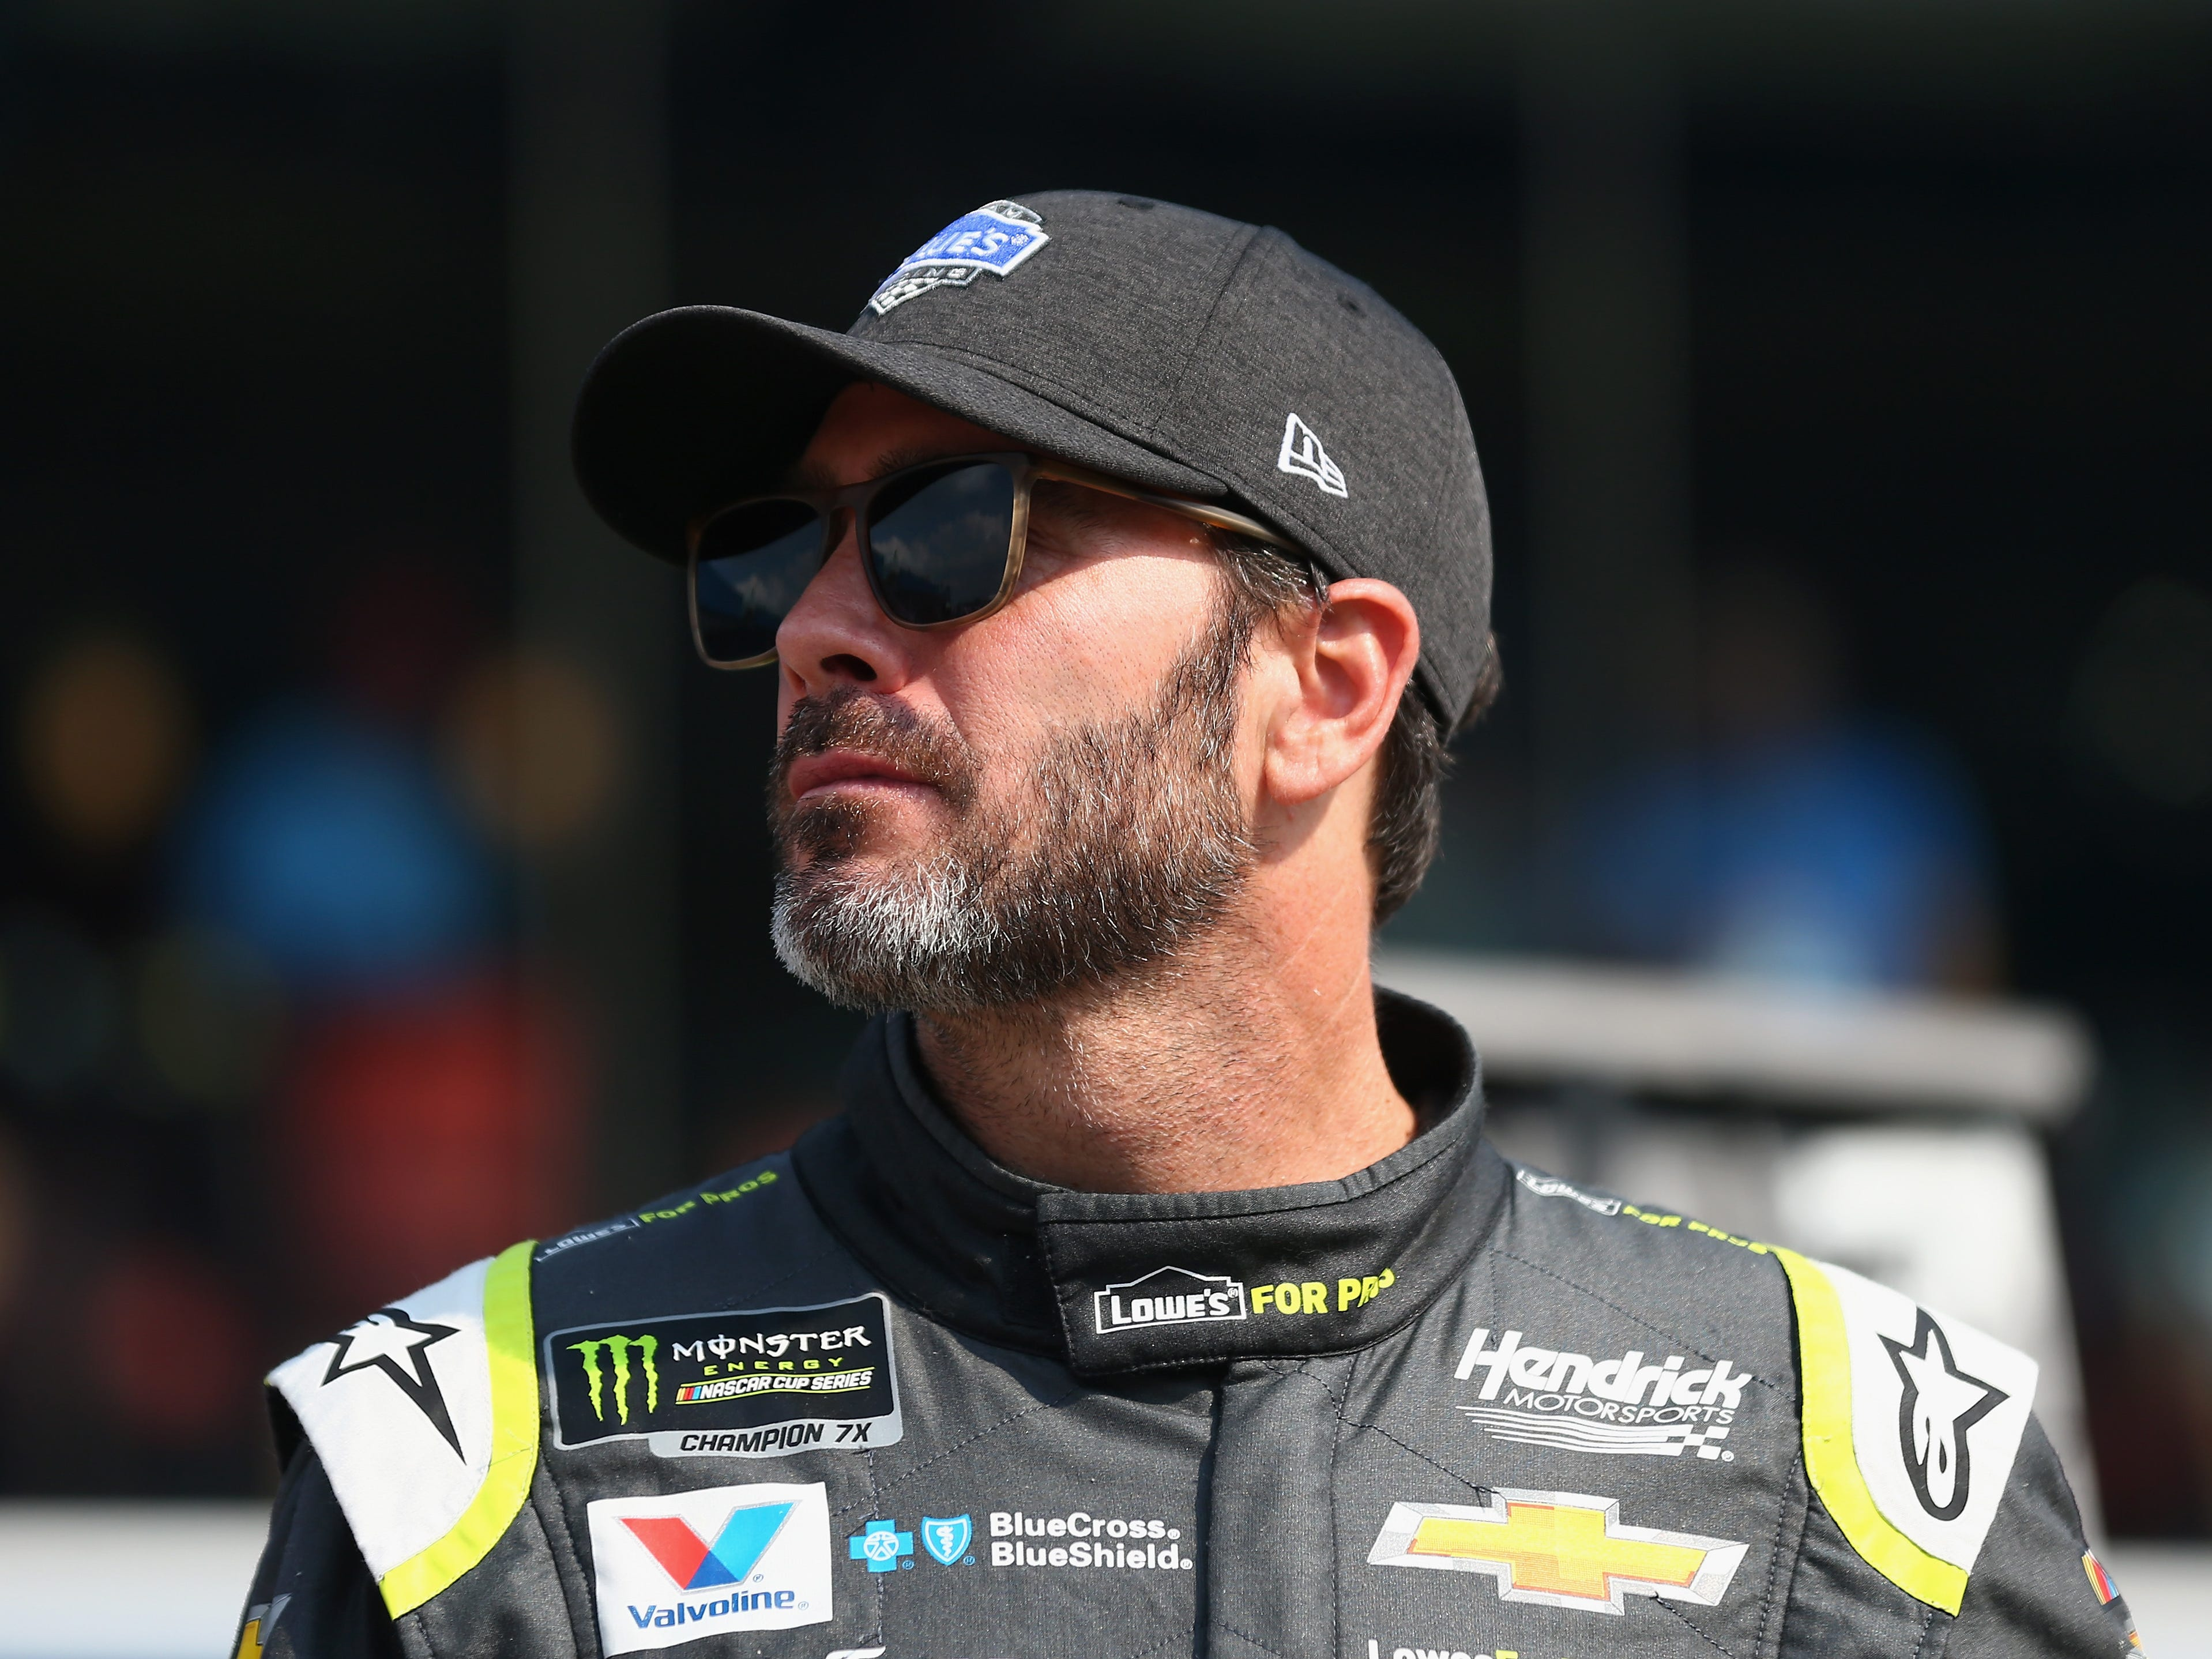 1014704852.jpg BROOKLYN, MI - AUGUST 10:  Jimmie Johnson, driver of the #48 Lowe's for Pros Chevrolet, stands on the grid during qualifying for the Monster Energy NASCAR Cup Series Consmers Energy 400 at Michigan International Speedway on August 10, 2018 in Brooklyn, Michigan.  (Photo by Sarah Crabill/Getty Images)